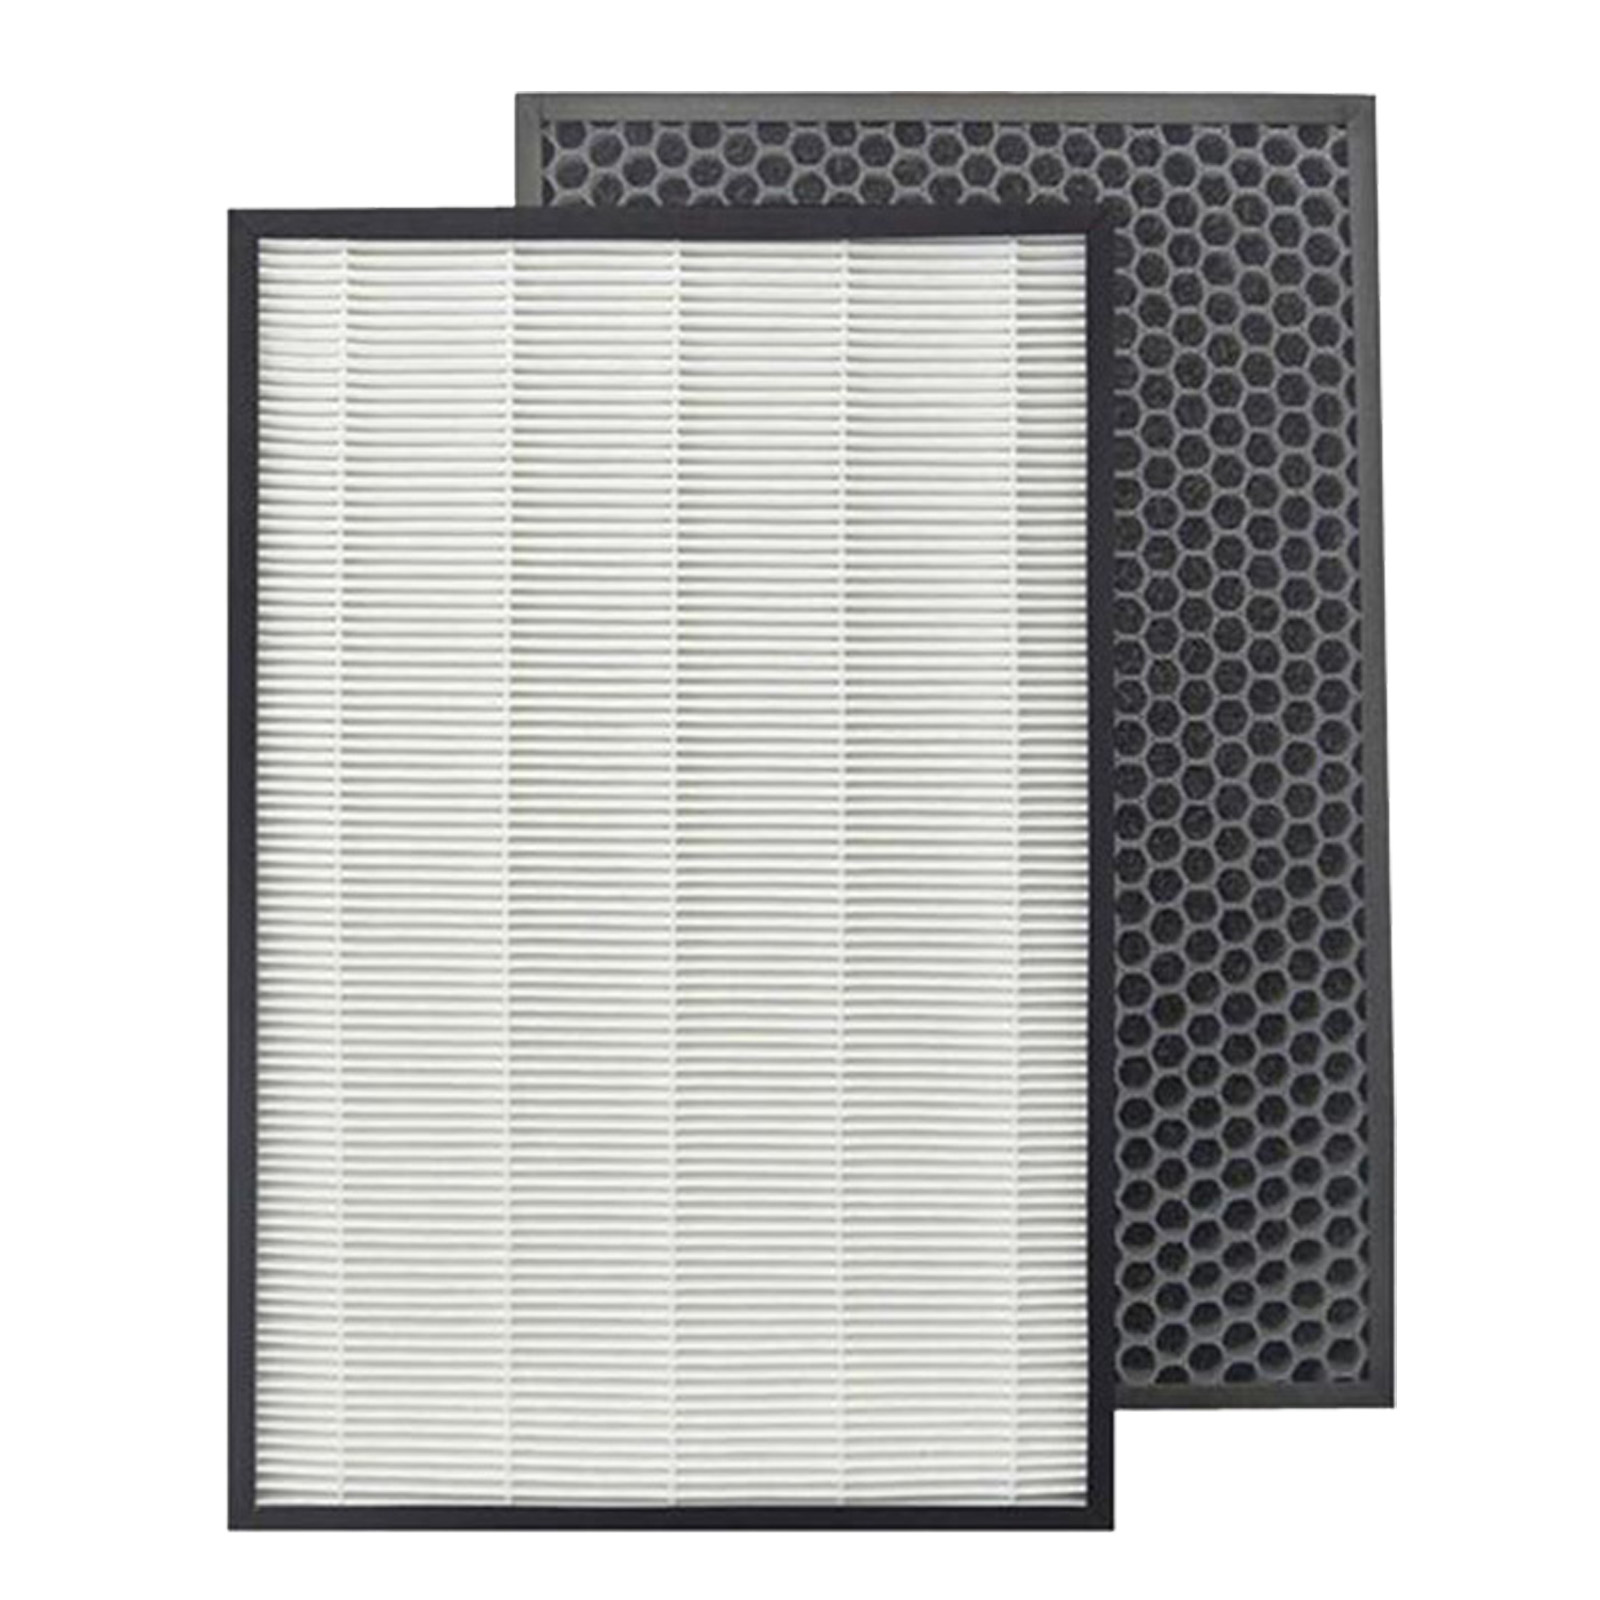 Sharp A80 HEPA and Carbon Filter Set